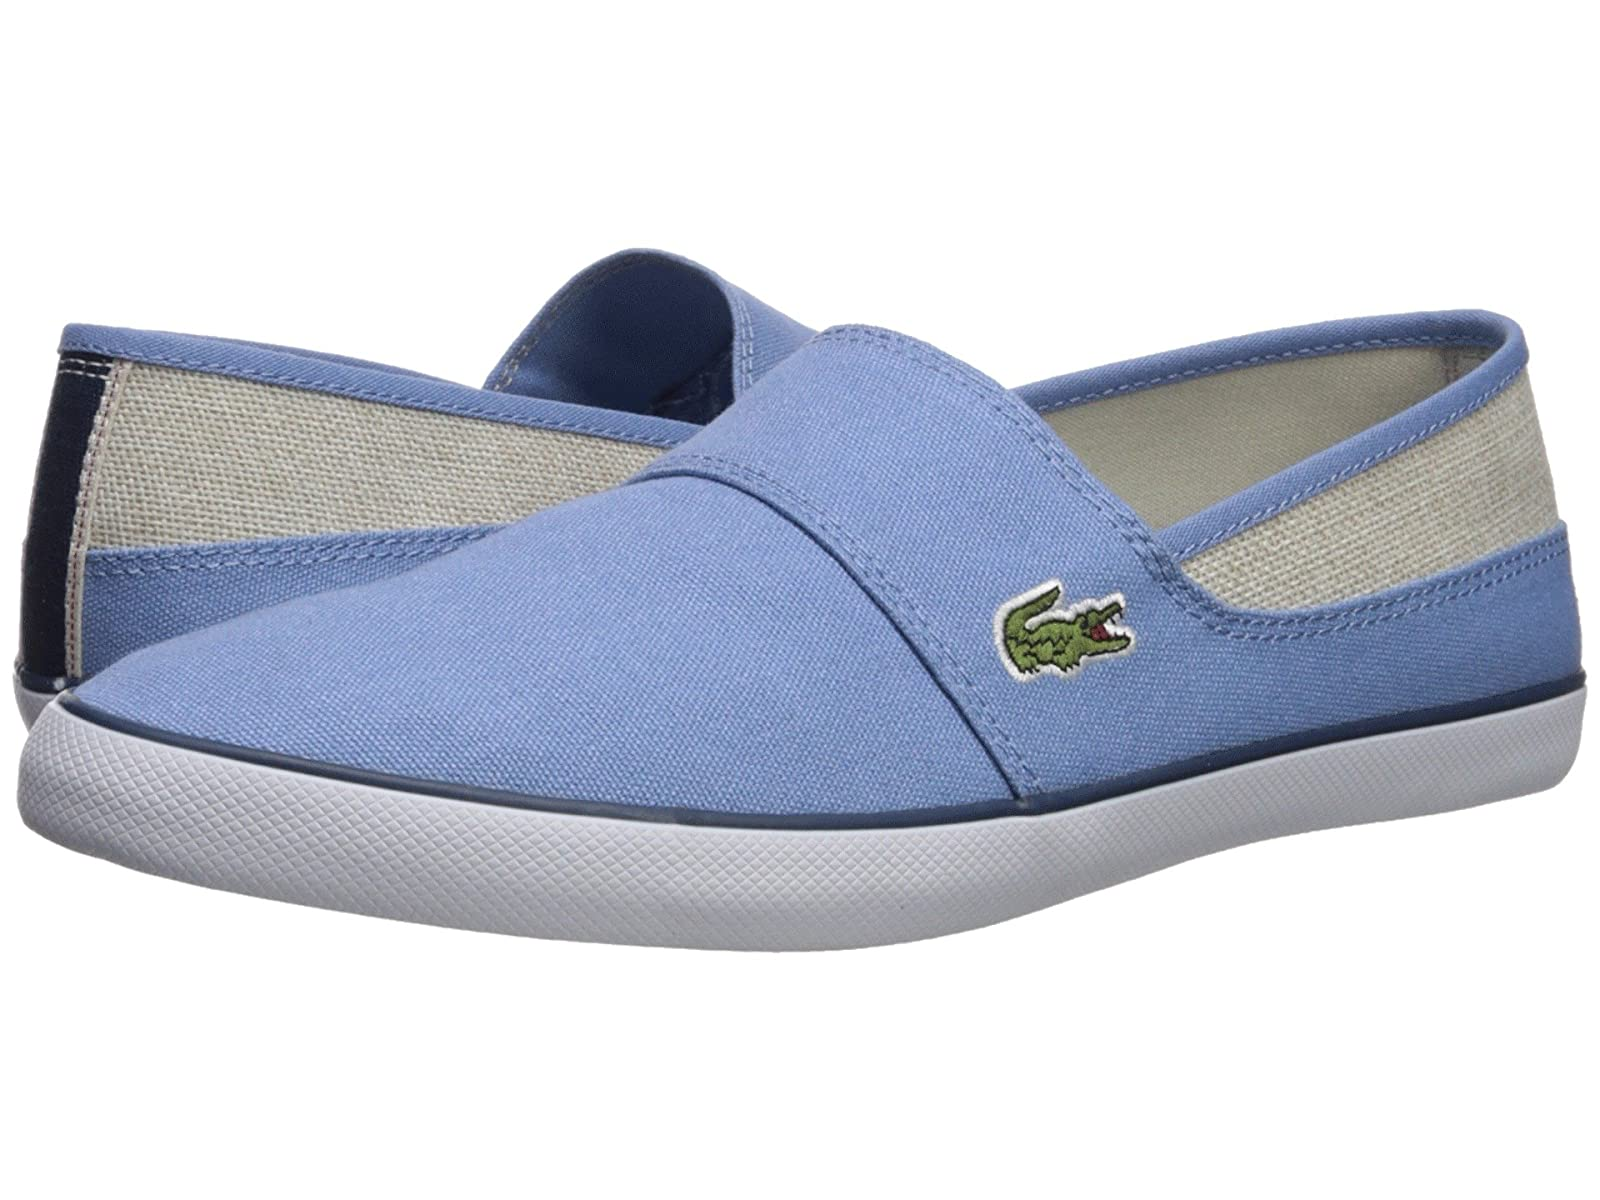 Lacoste Marice 218 1Atmospheric grades have affordable shoes